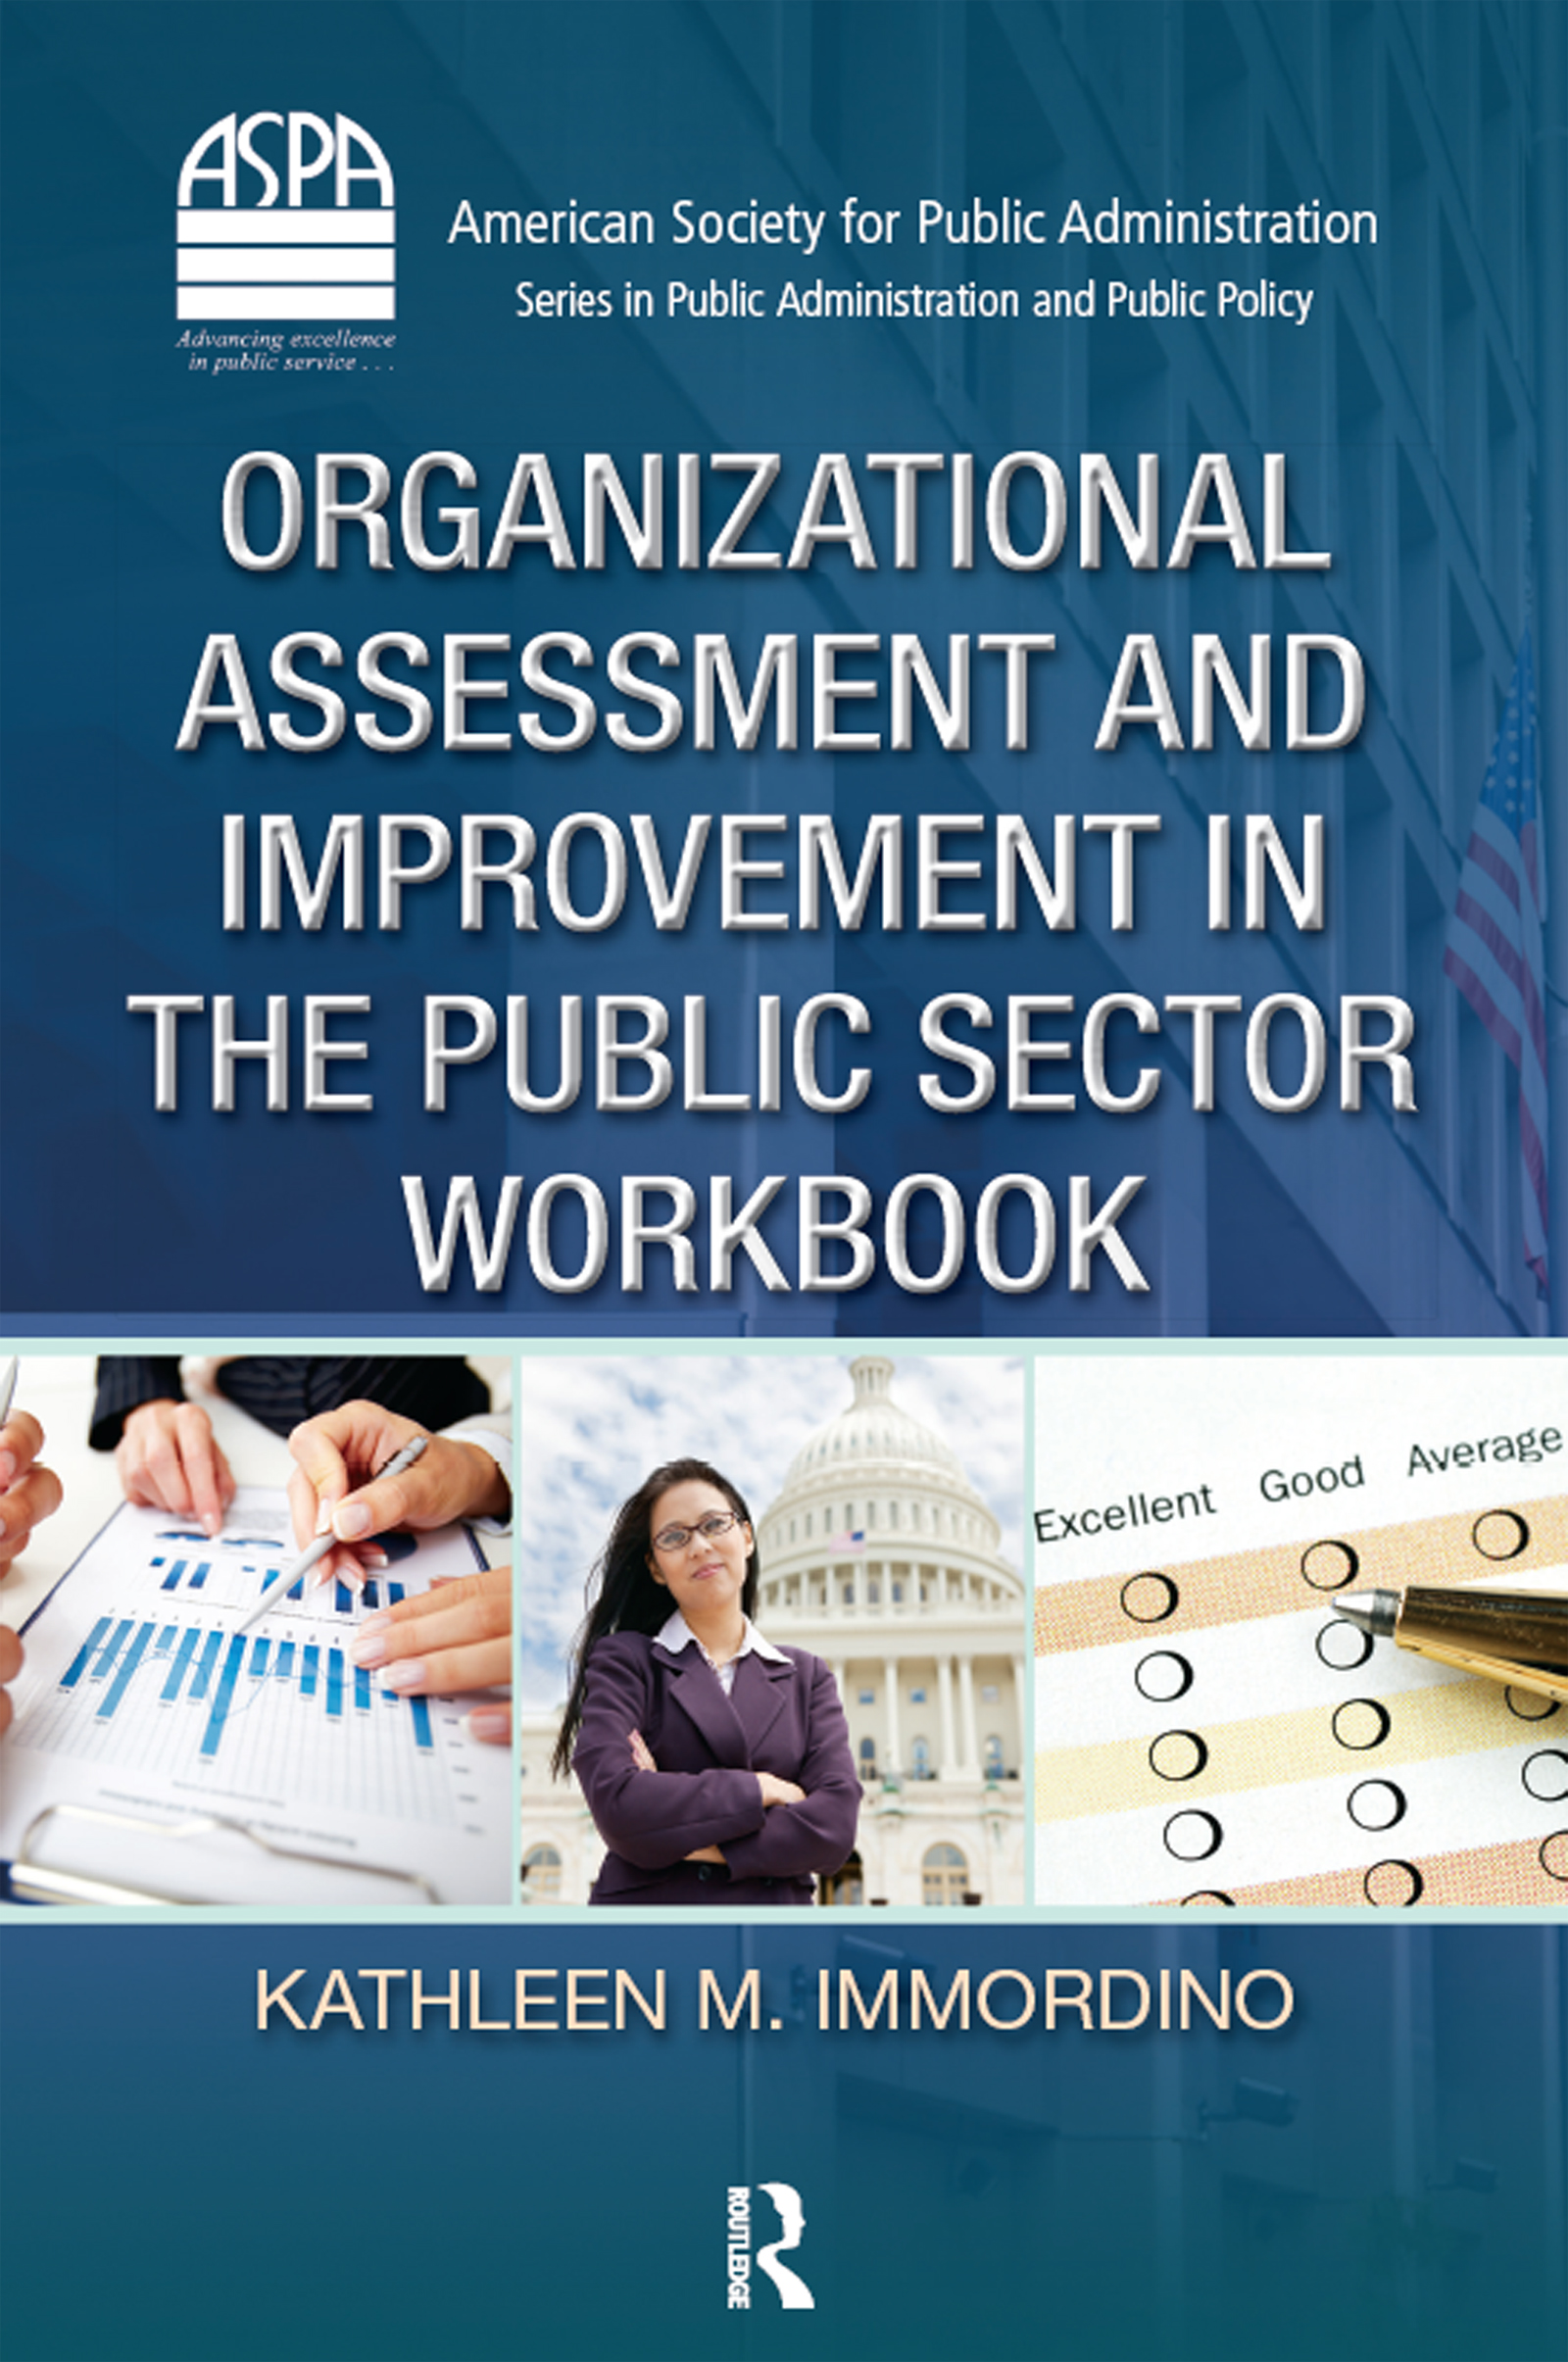 Organizational Assessment and Improvement in the Public Sector Workbook